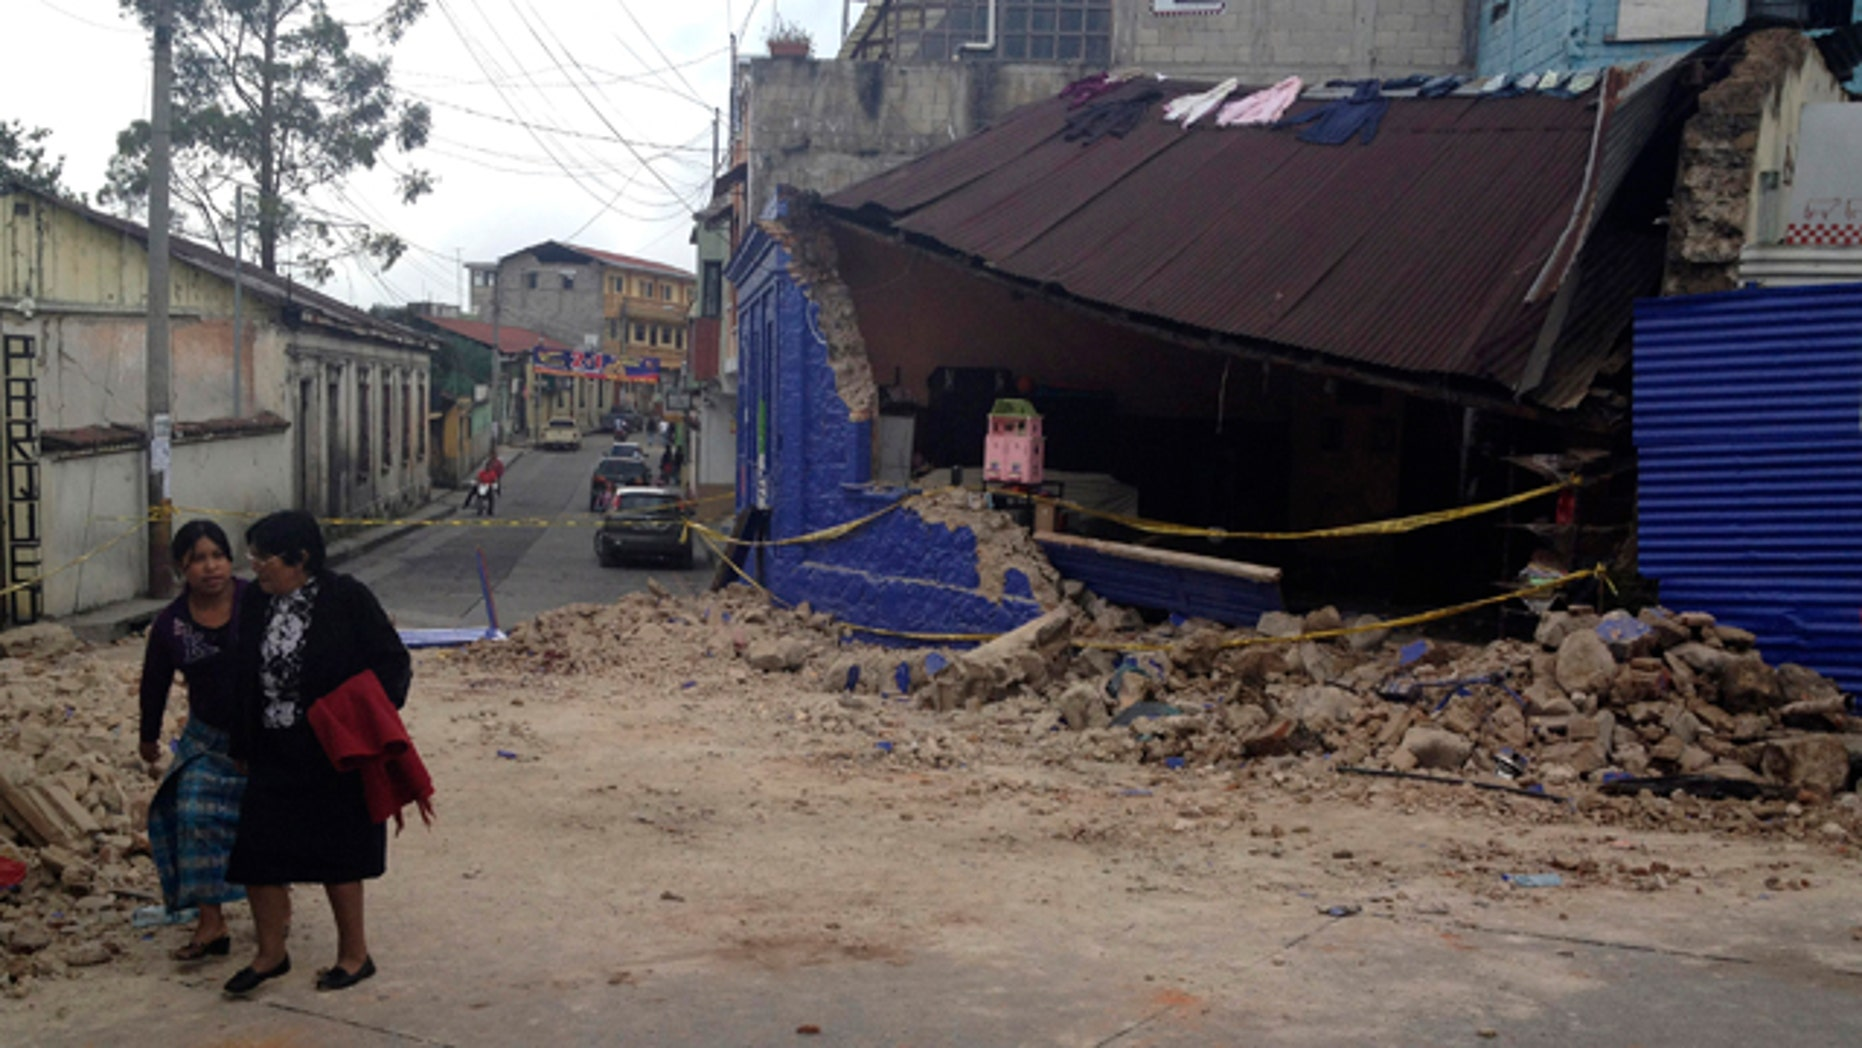 Nov. 7, 2012: Two women walk past a building damaged after a magnitude 7.4 earthquake struck in San Marcos, Guatemala.